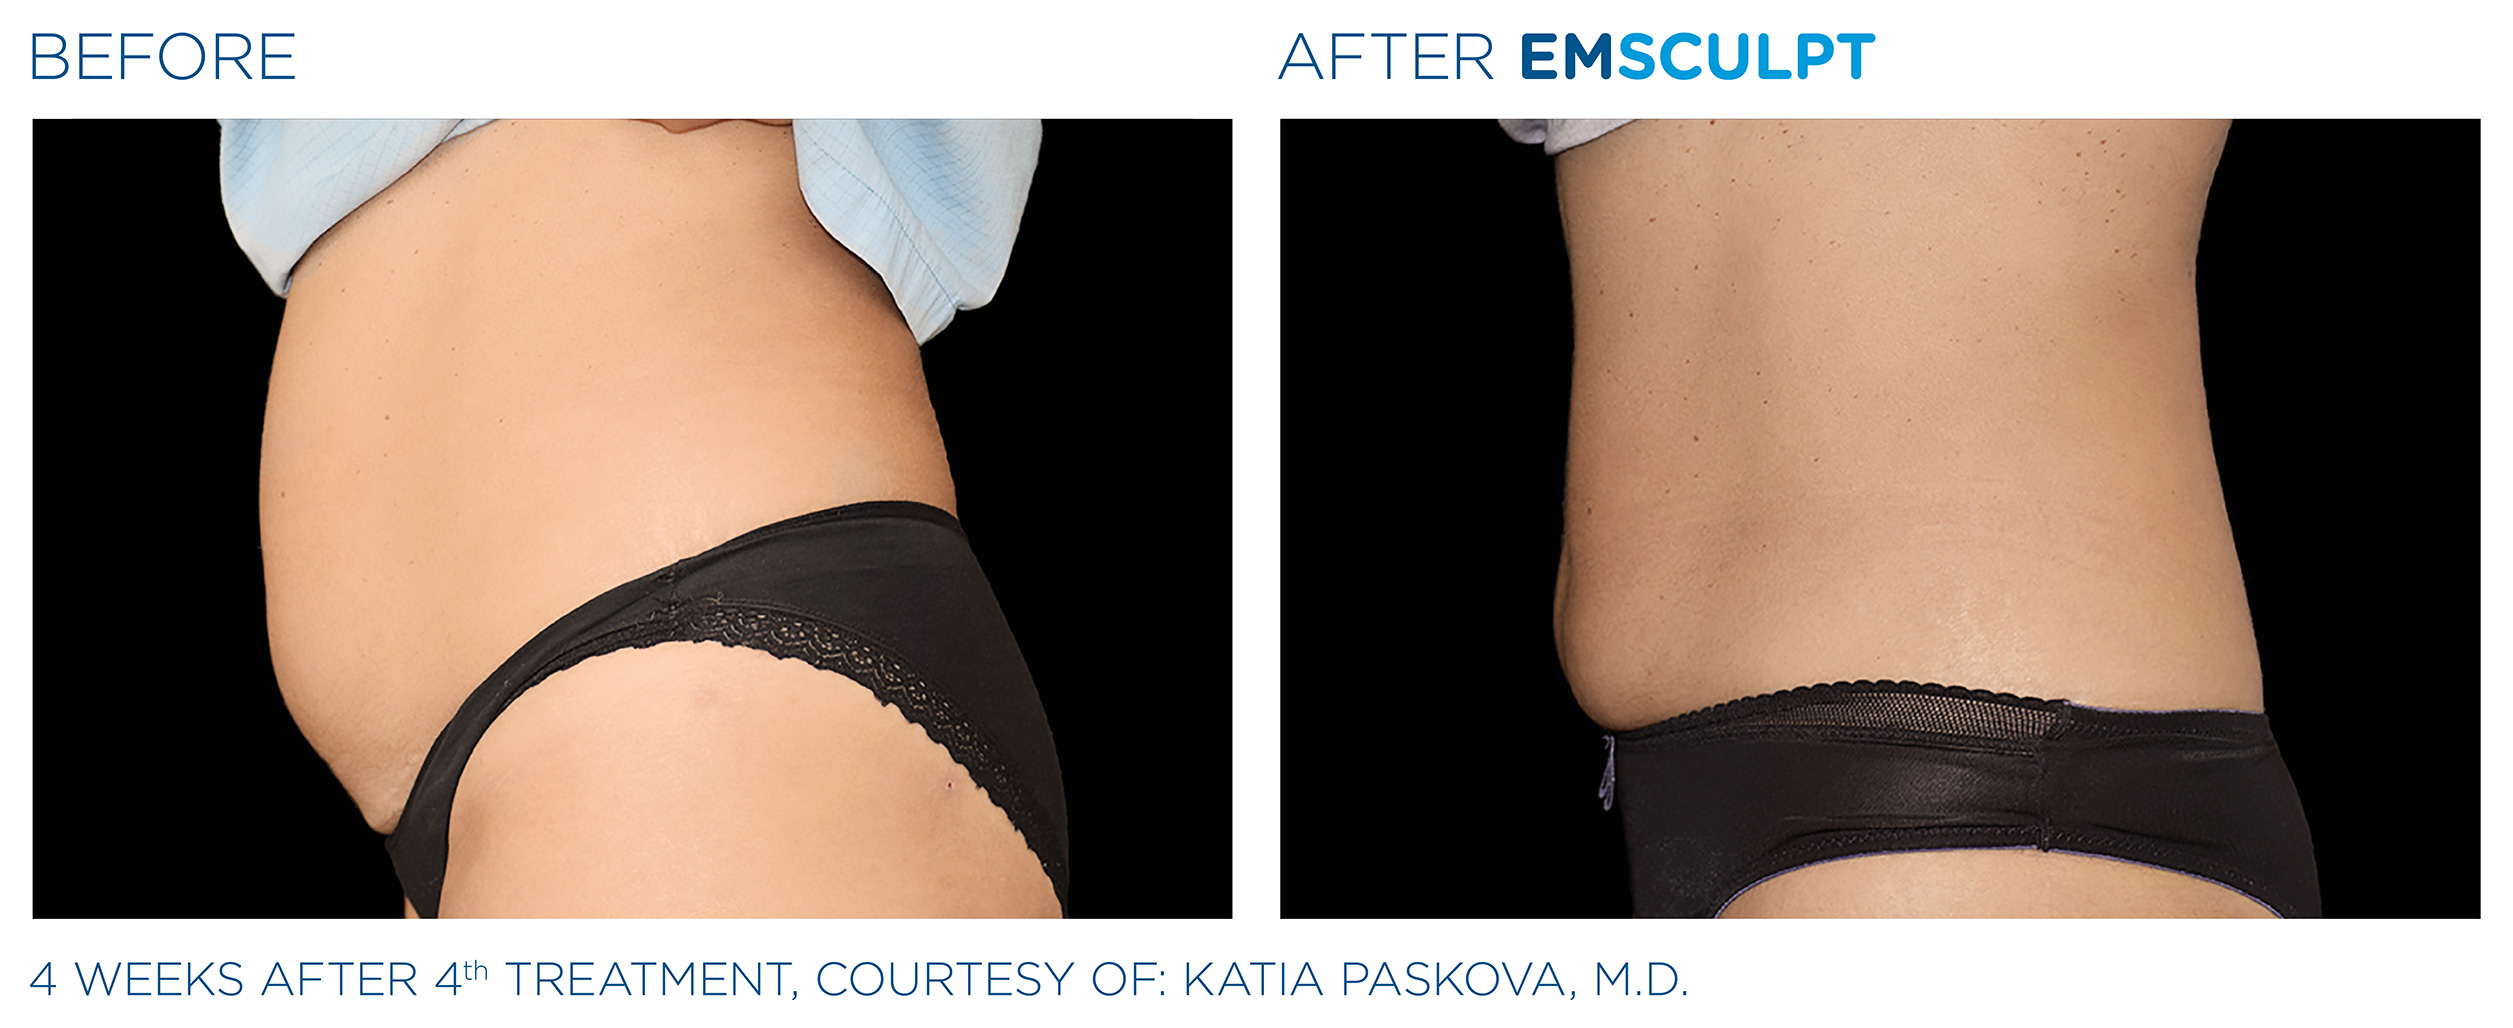 EMSCULPT Before & After Photos | Abdomen 15